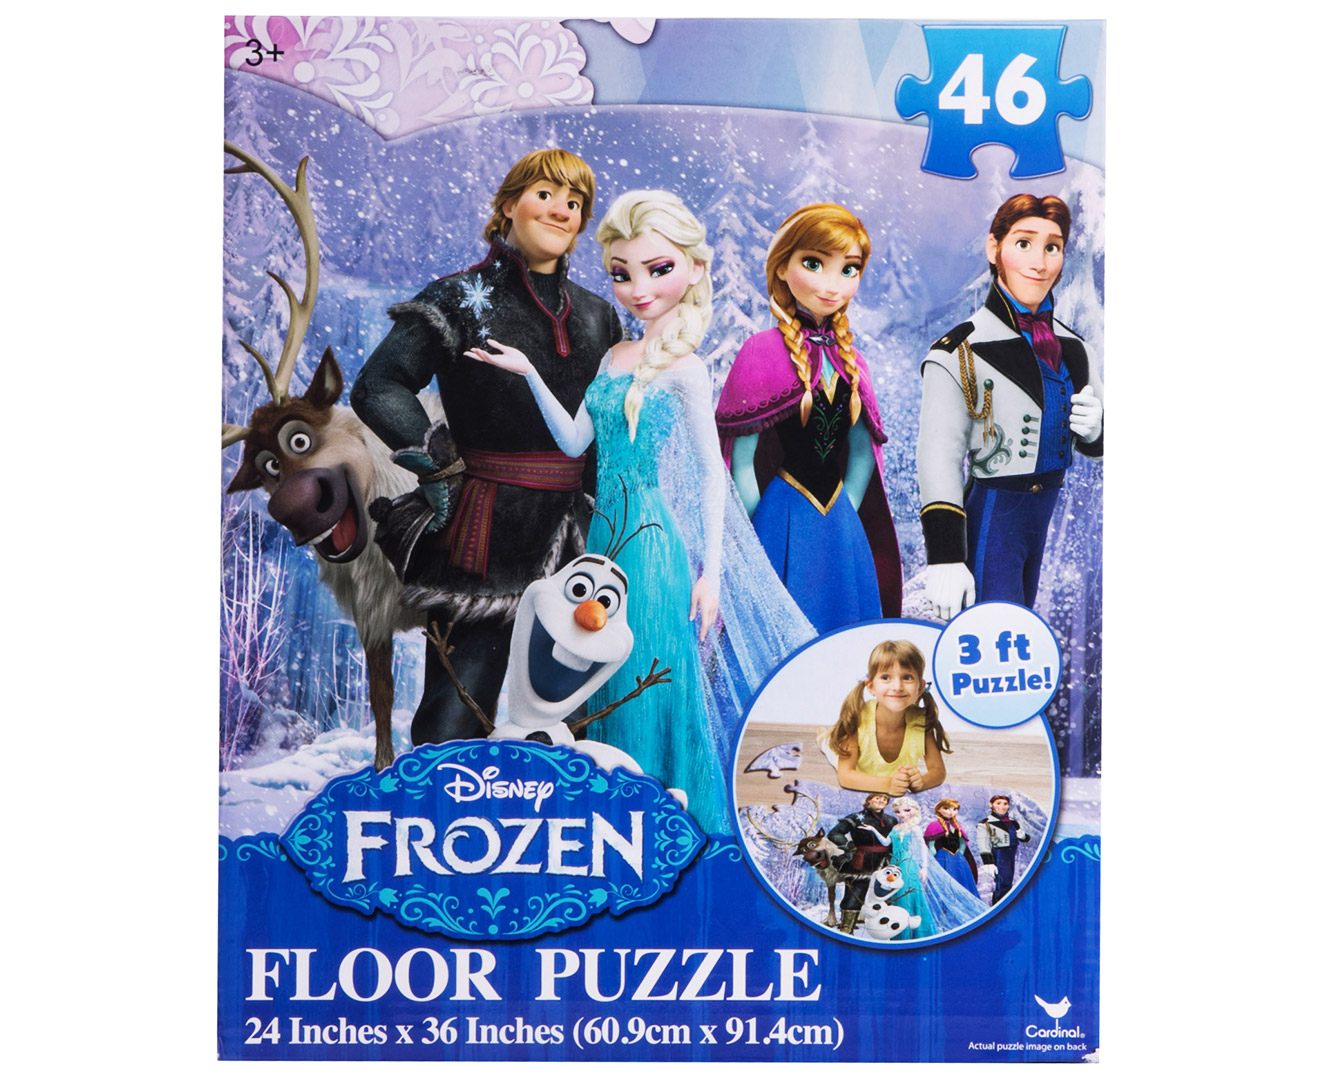 Disney Frozen 46 Piece Floor Puzzle Catch Com Au